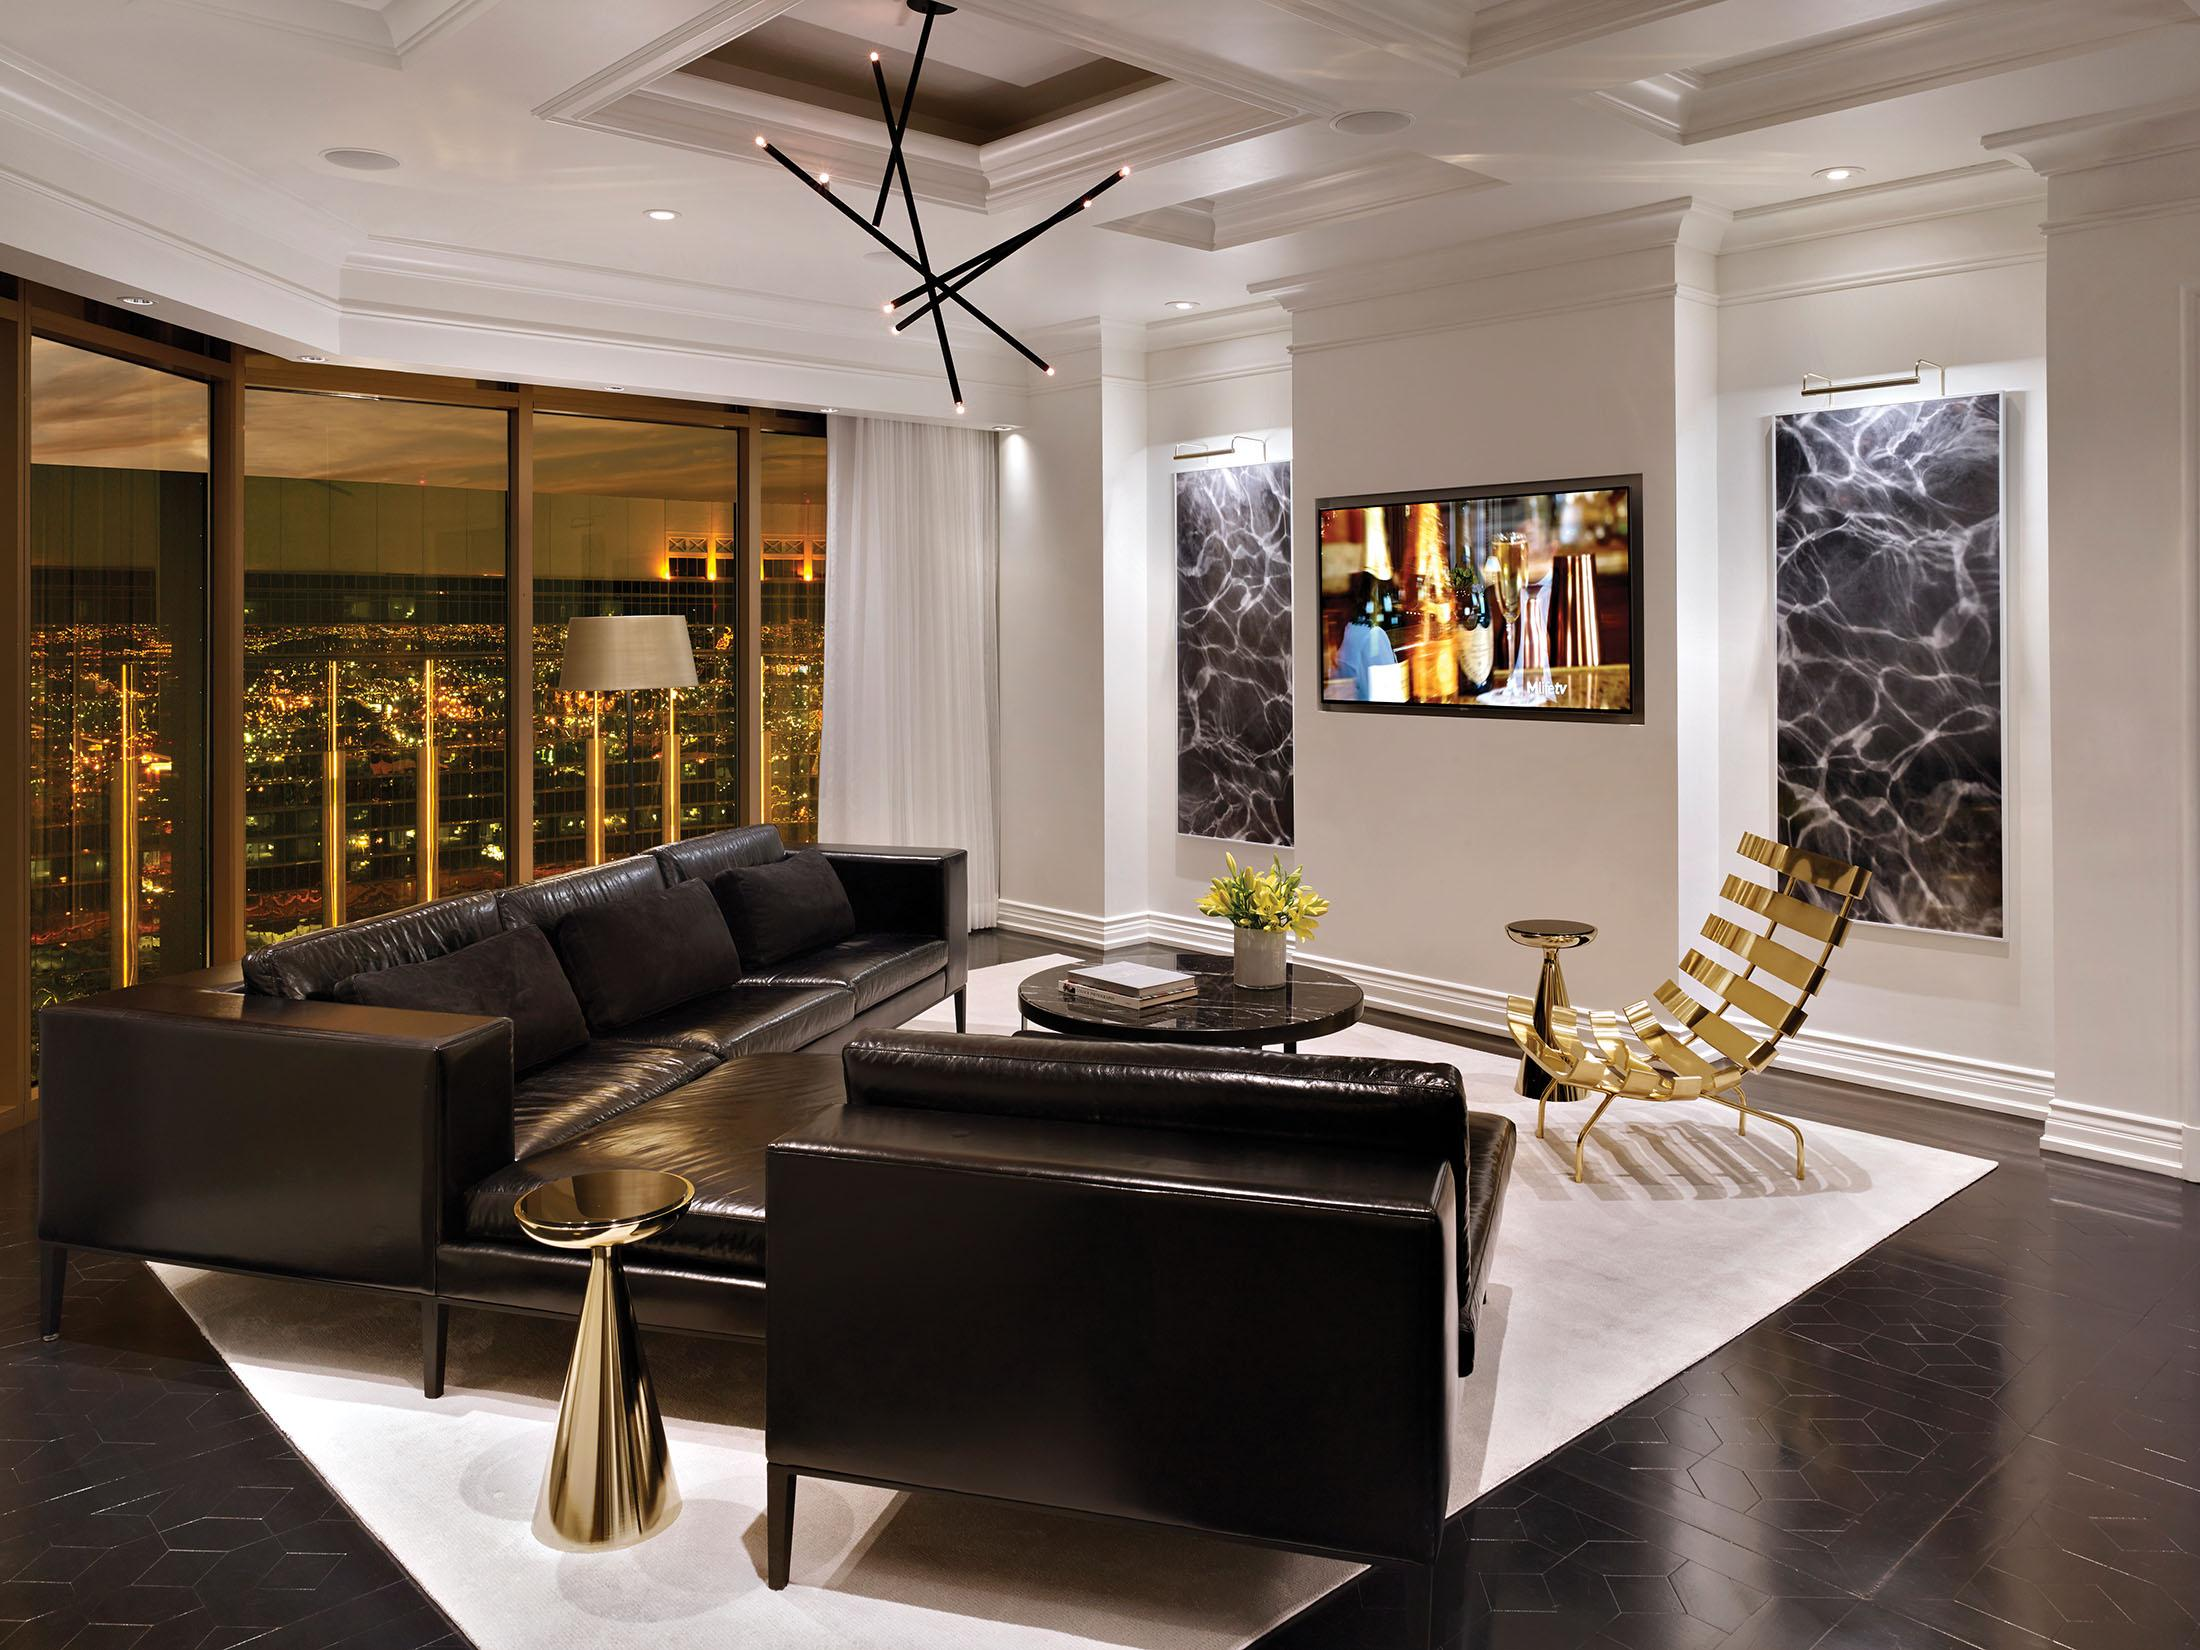 Delano Las Vegas loft room living area